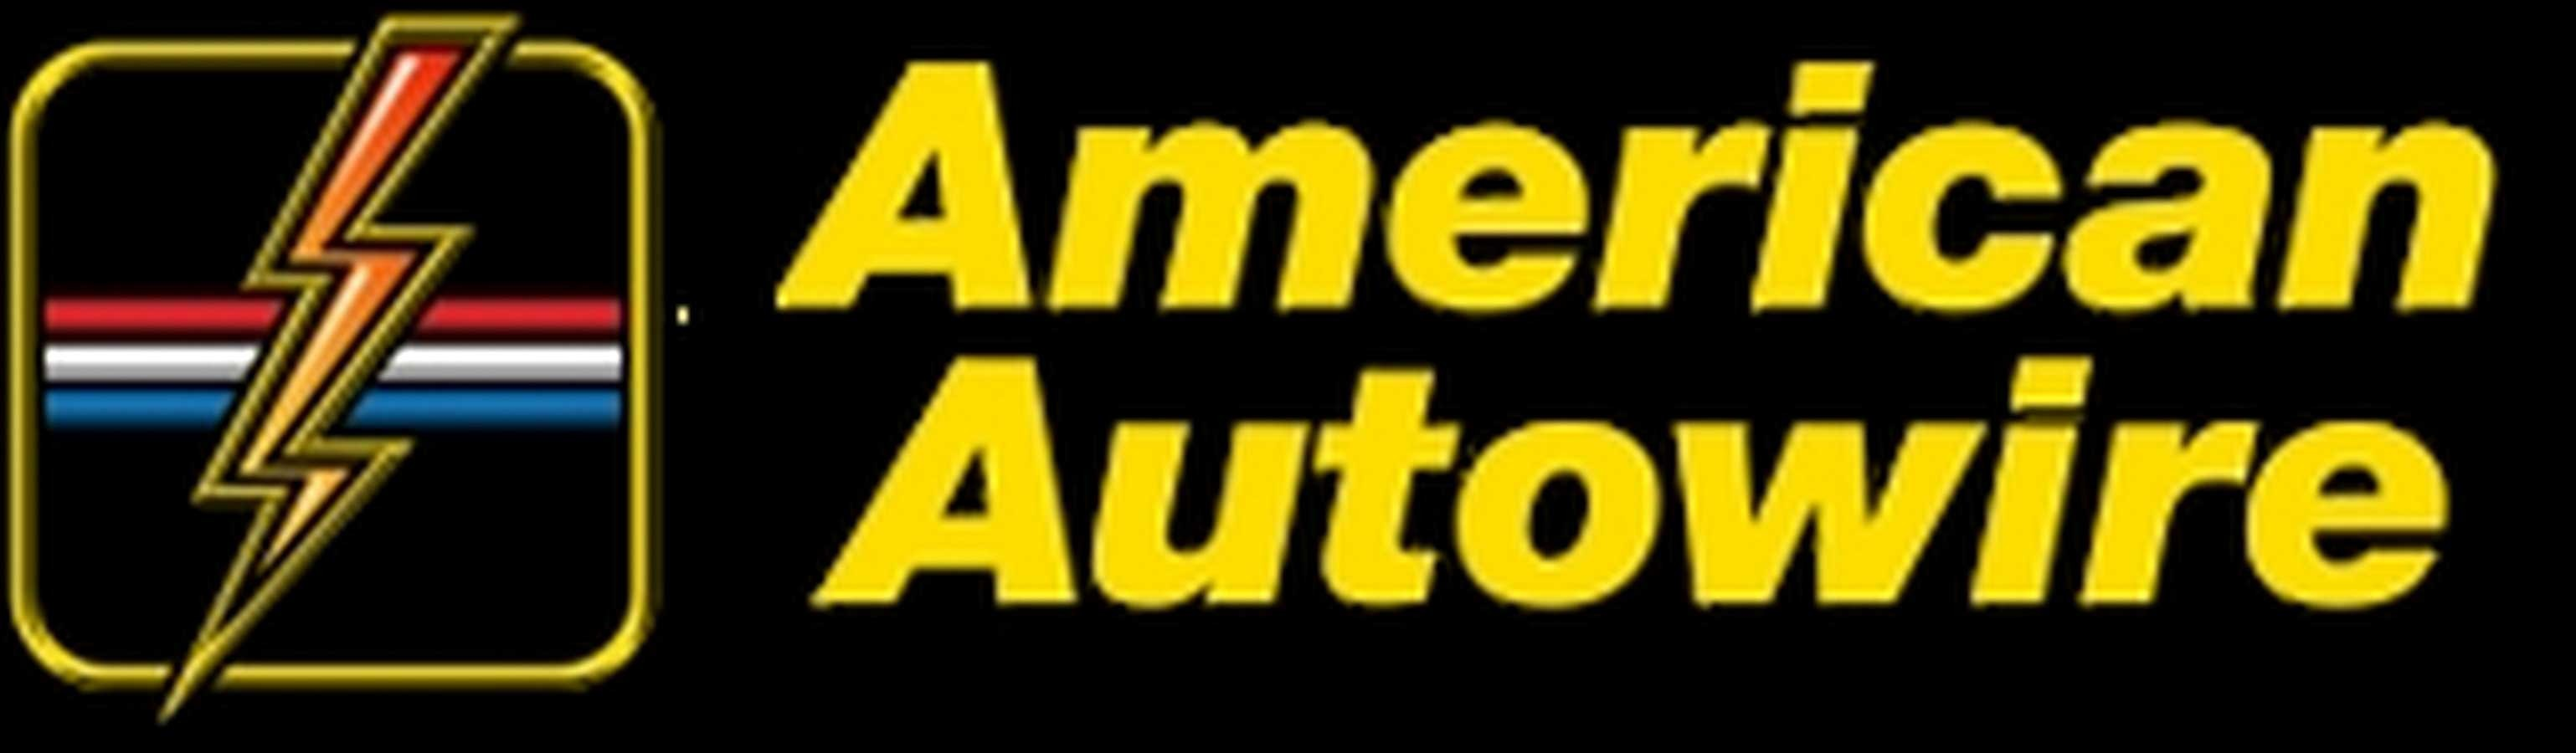 AMERICAN AUTOWIRE 2016